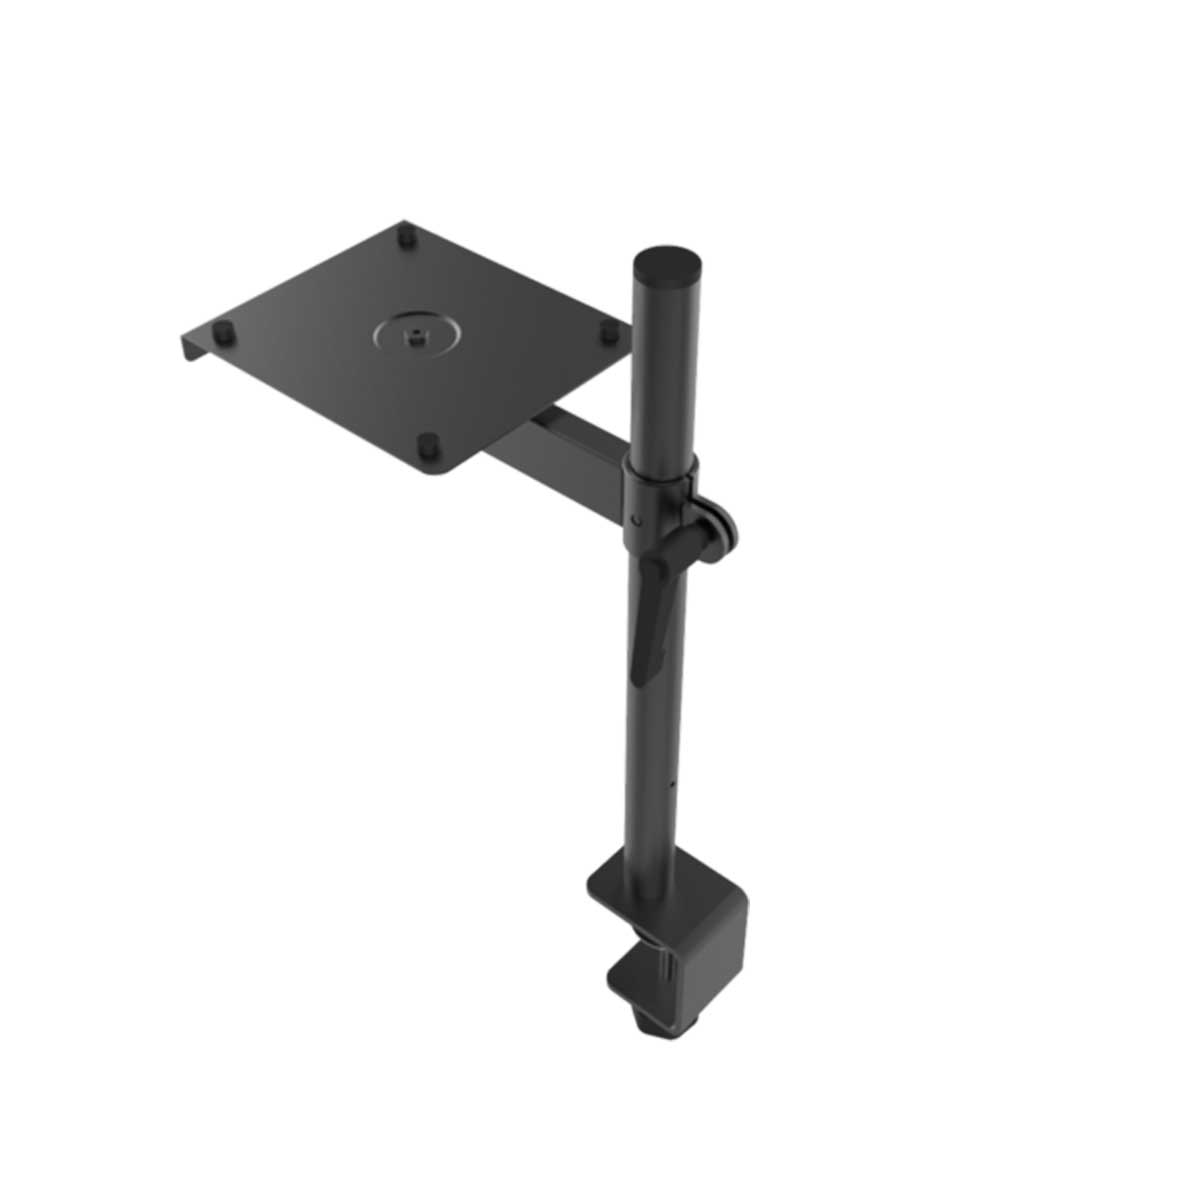 Wavebone Gemini Height-Adjustable Table Top Speaker Stands